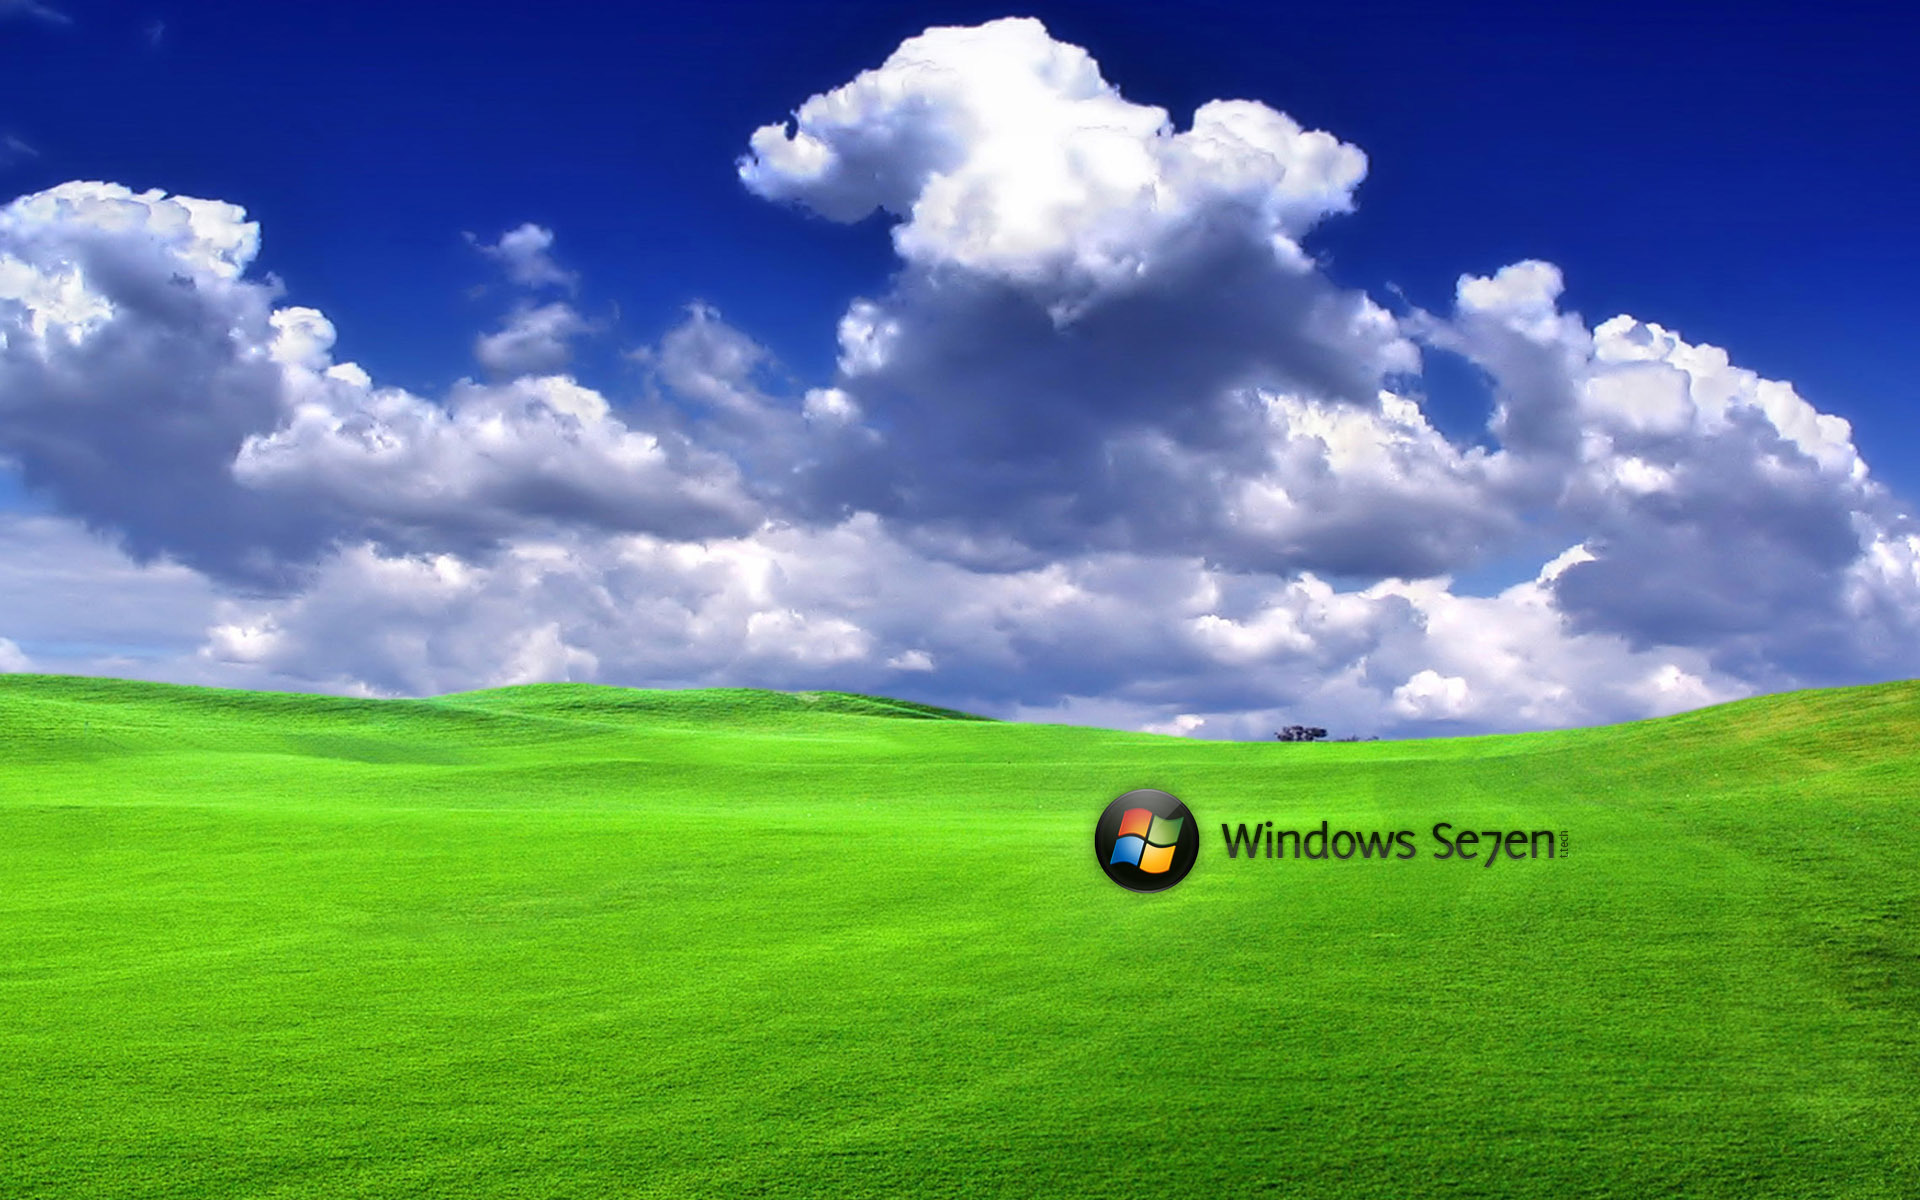 10203 download wallpaper Landscape, Brands, Background, Sky, Clouds screensavers and pictures for free